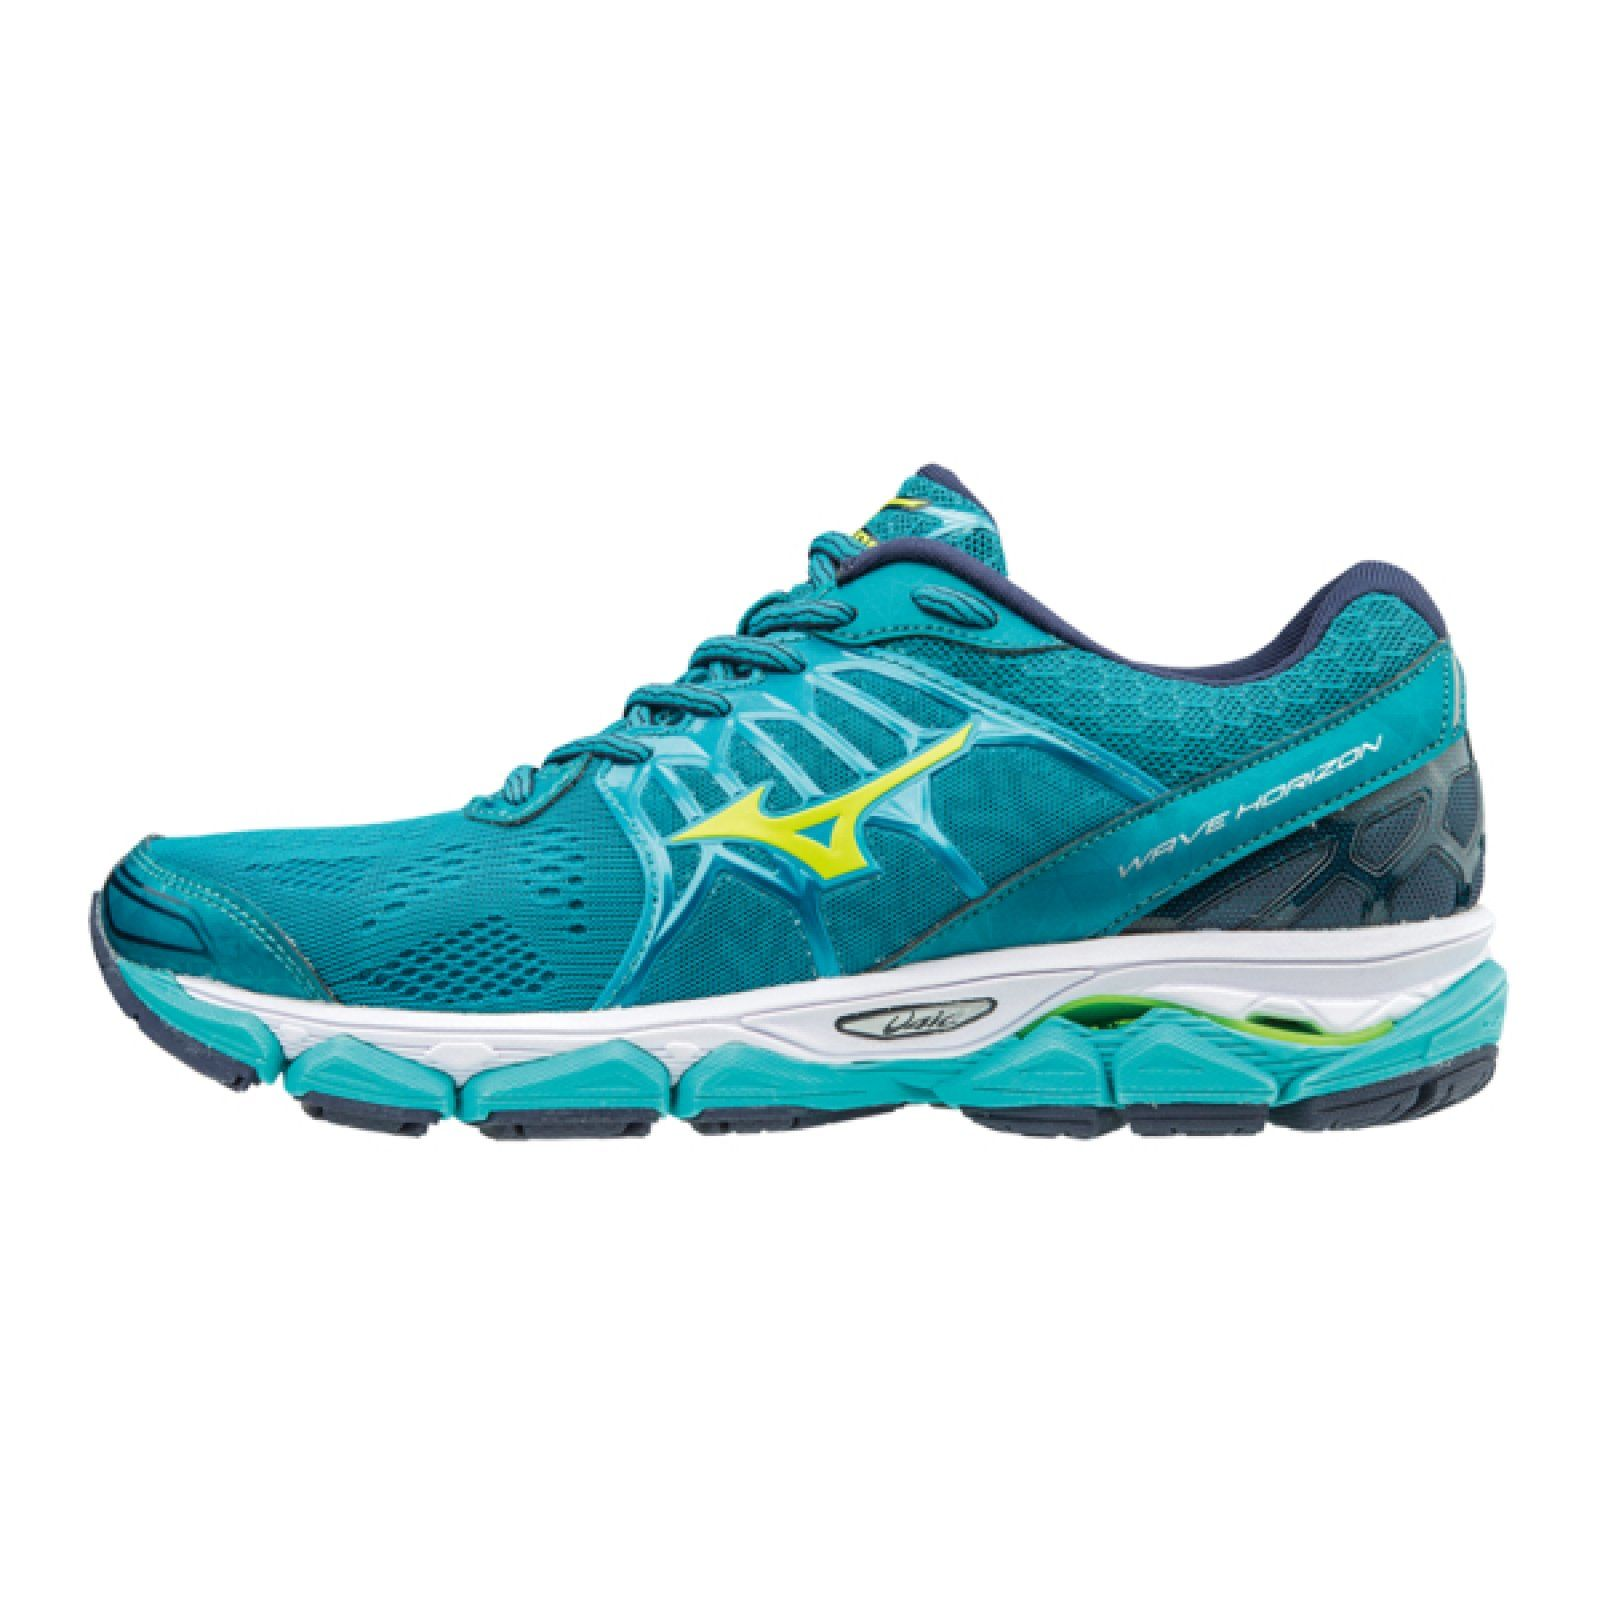 Mizuno Lady Wave Horizon in Aquamarin